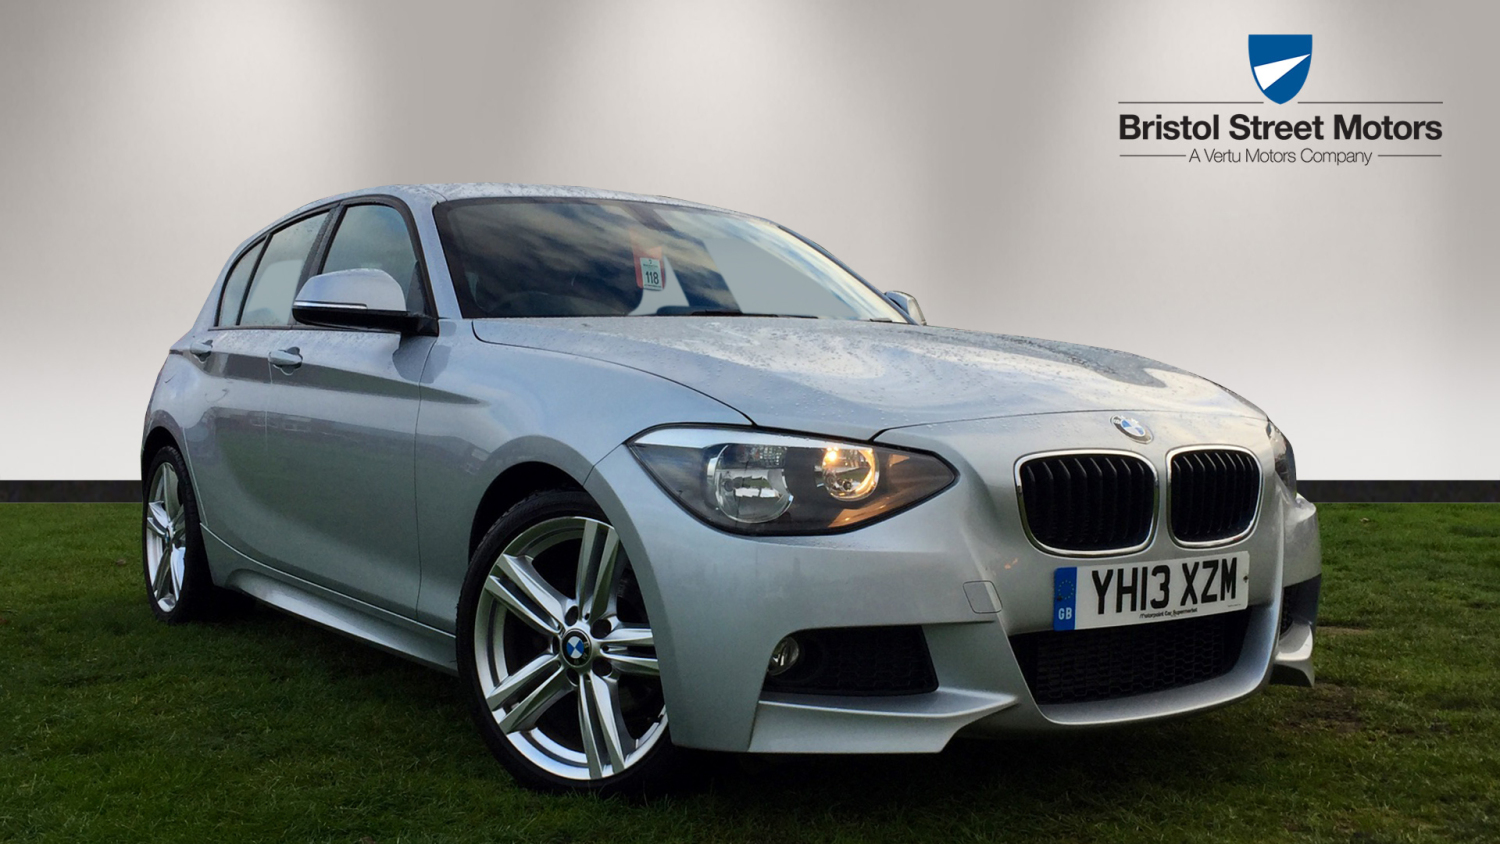 used bmw 1 series 116d m sport 5dr diesel hatchback for sale bristol street motors. Black Bedroom Furniture Sets. Home Design Ideas